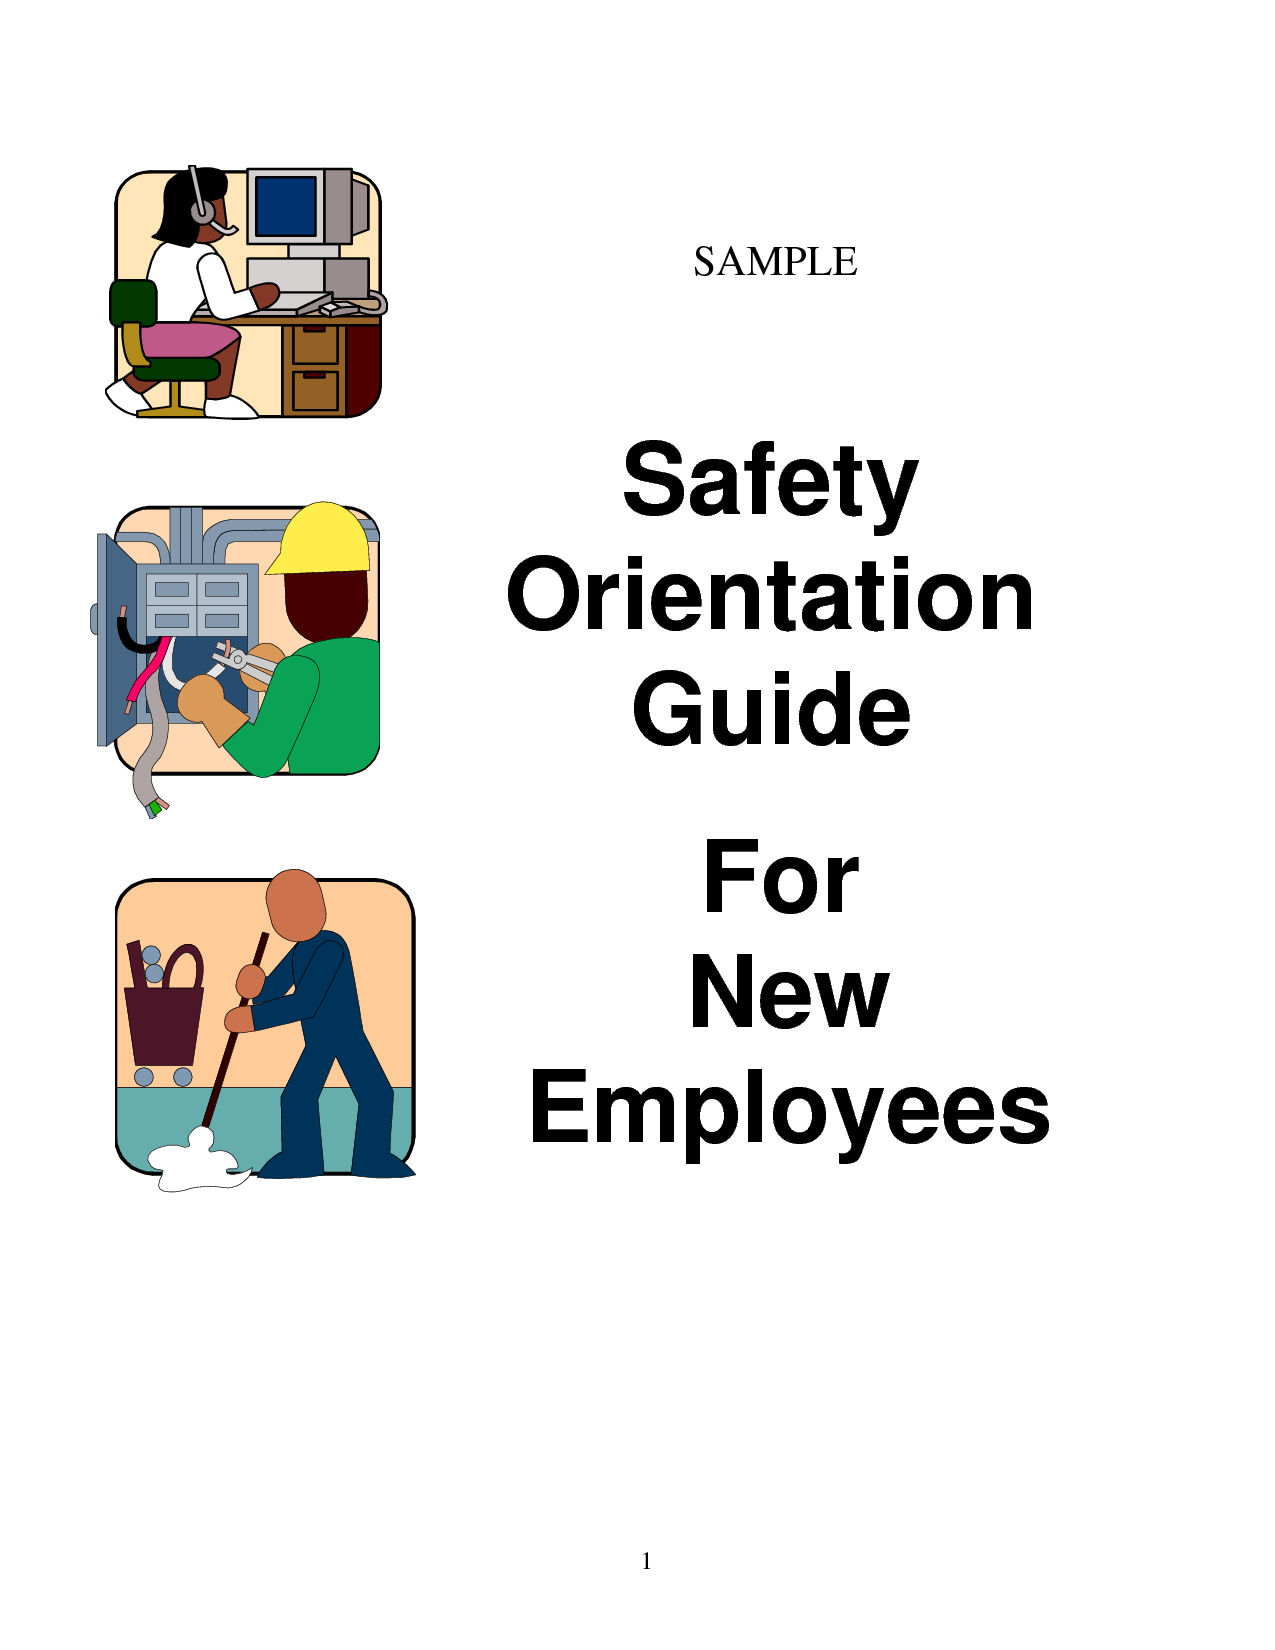 new employee orientation clip art free image